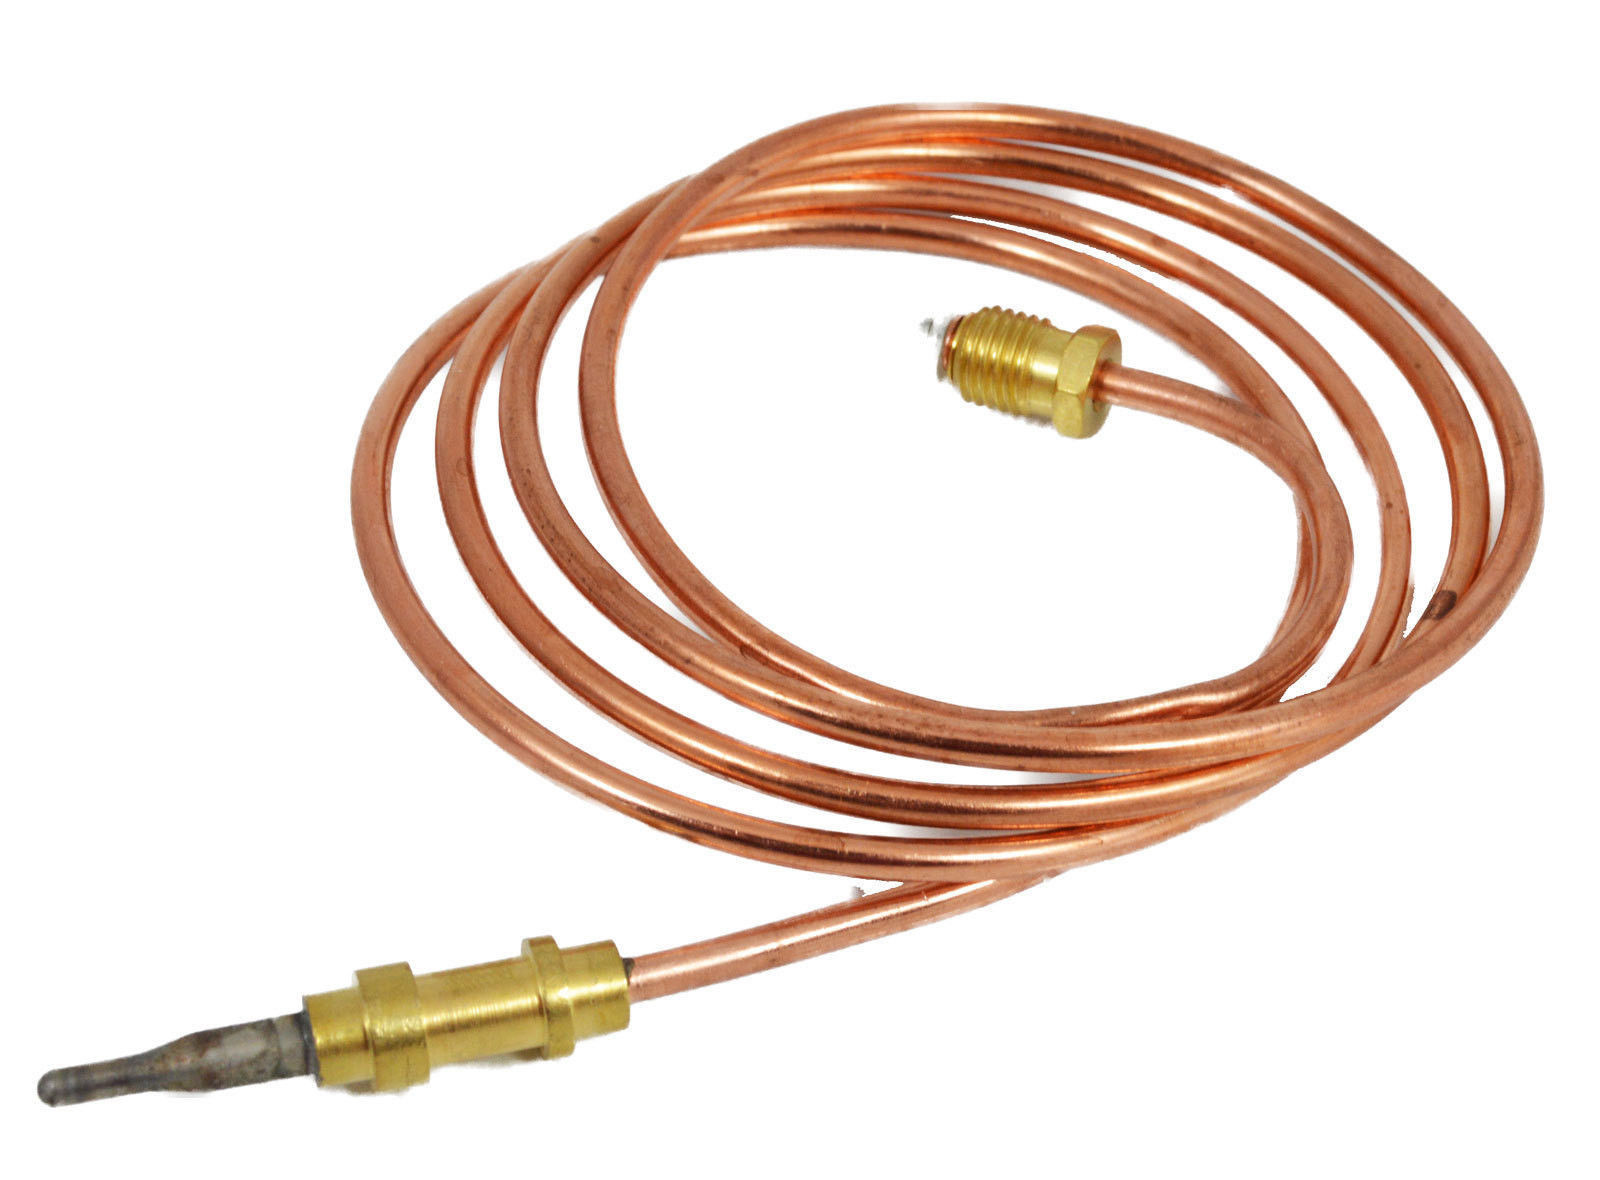 Thermocouple Replacement Desa Lp Heater 098514 01 02 Space Wiring A Electric Heaters